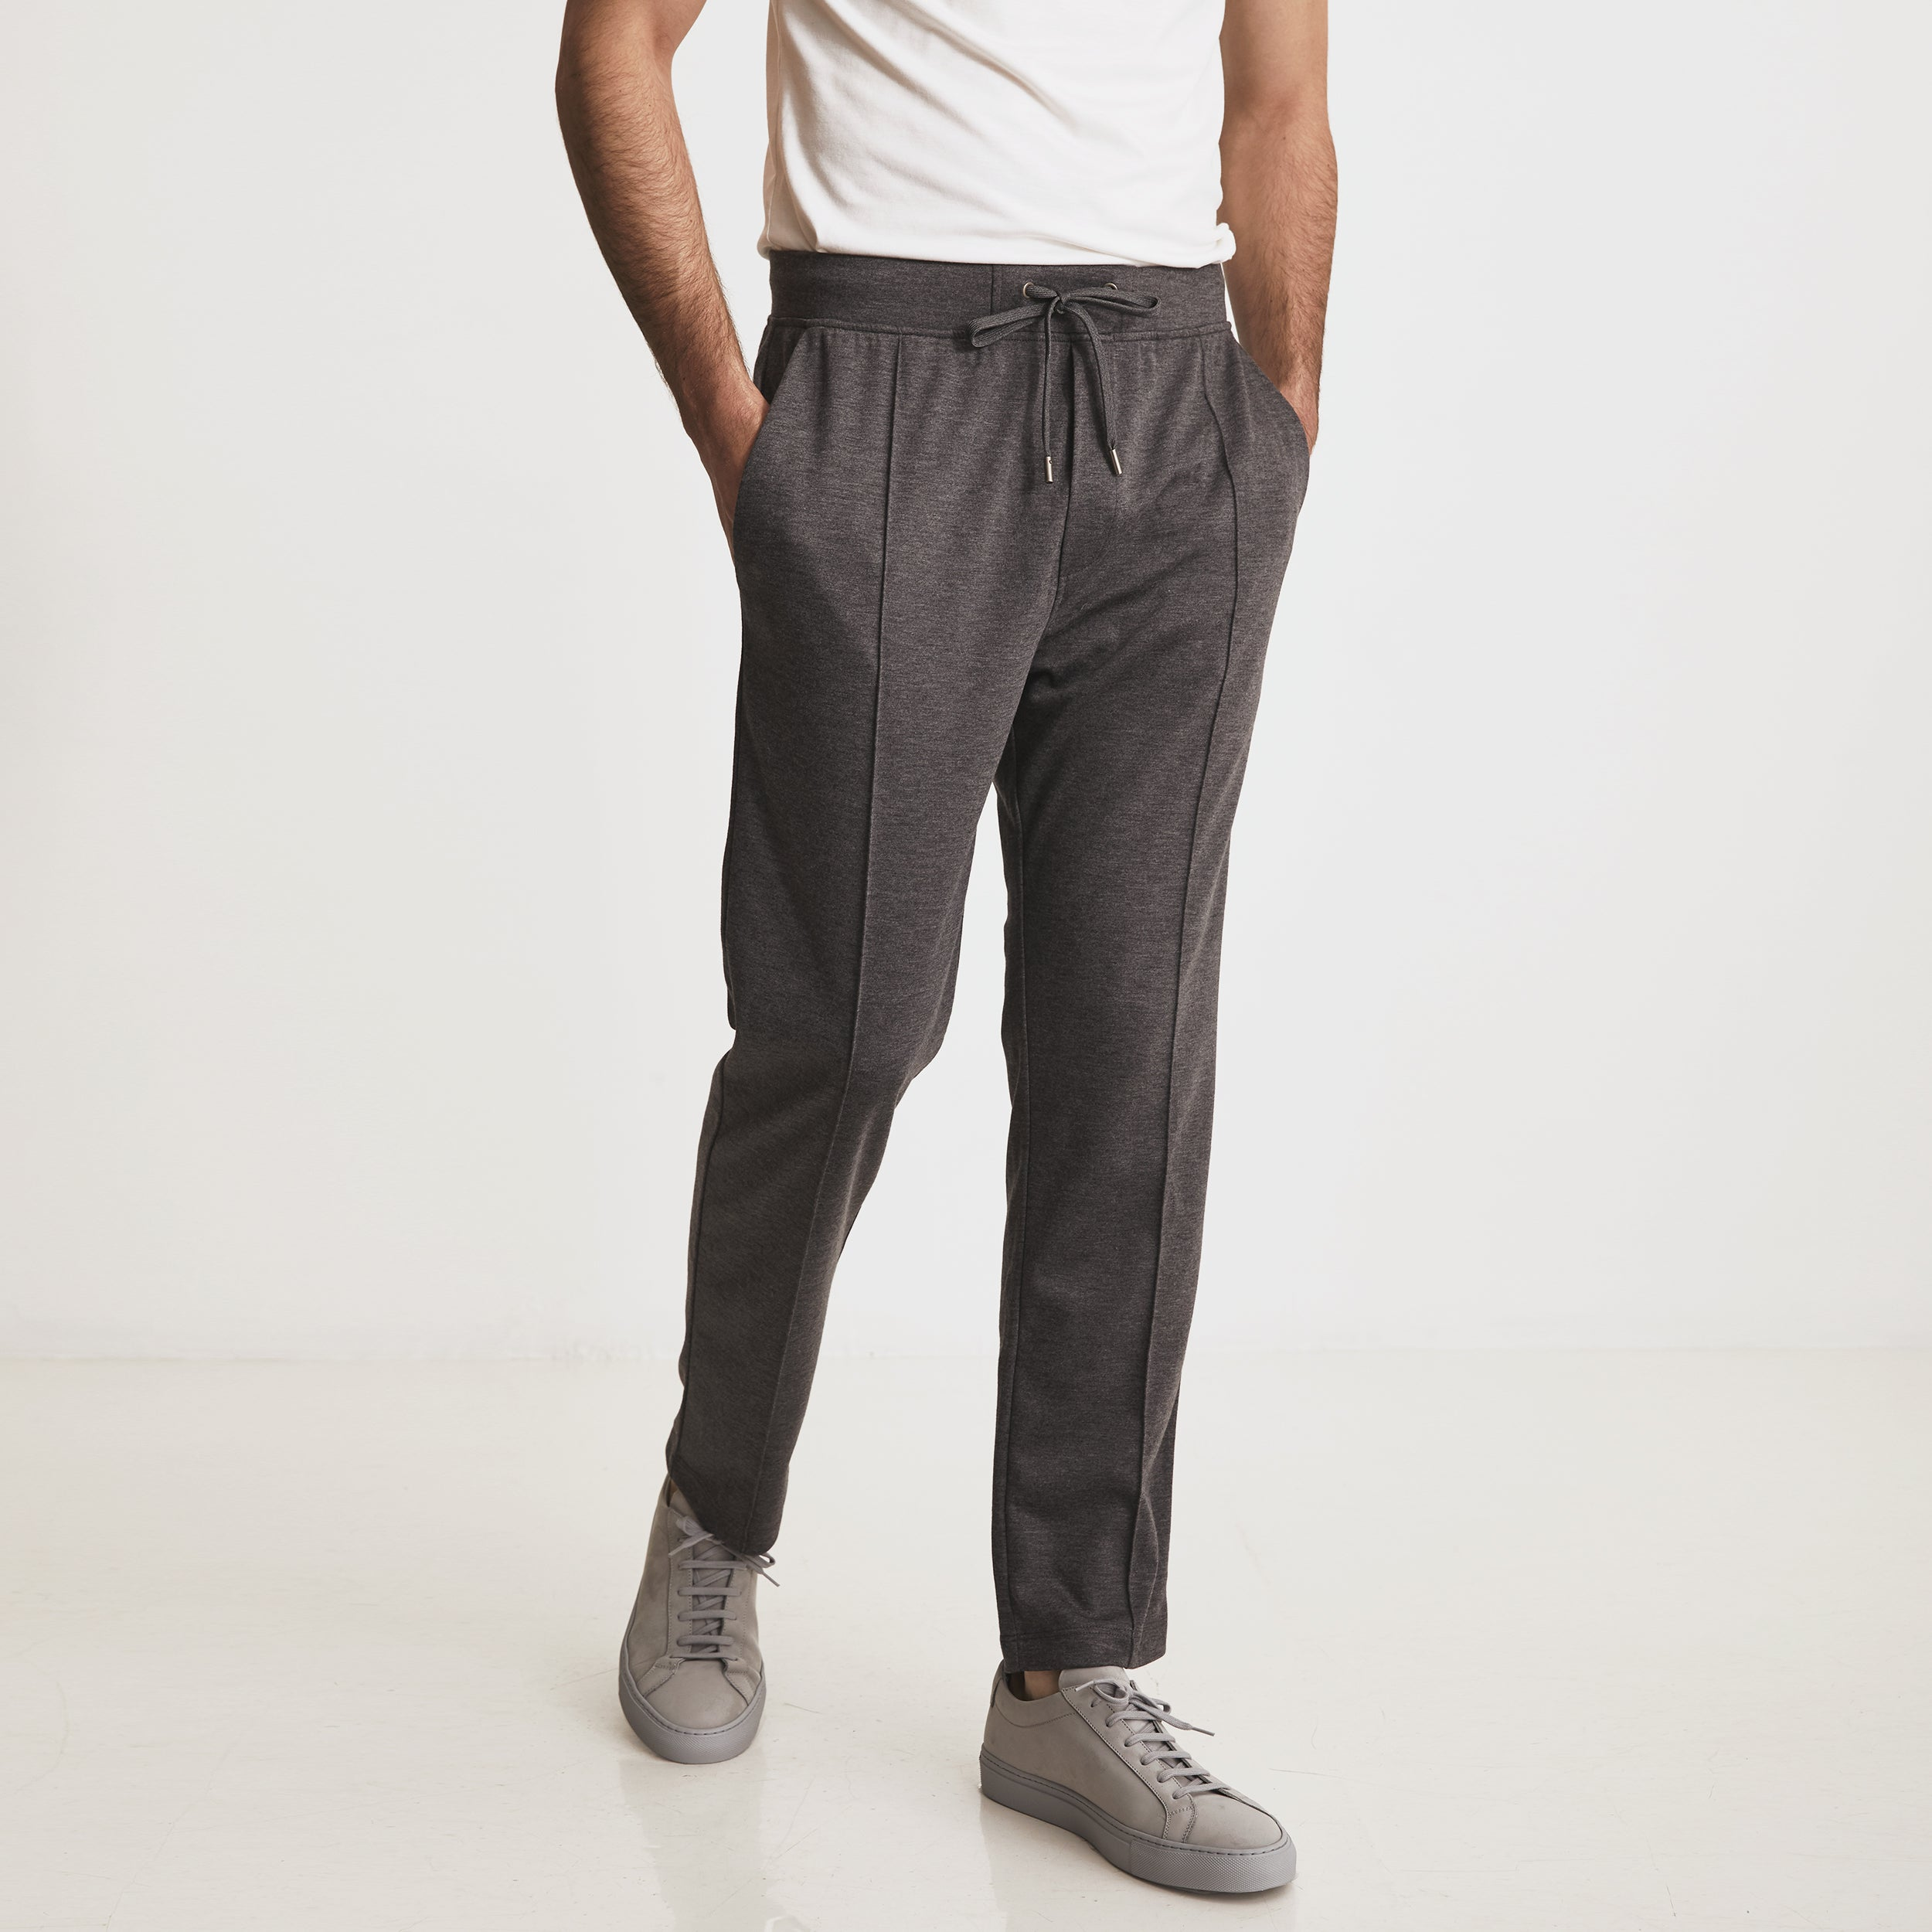 GARROS PINTUCK SLACKS - Charcoal Heather